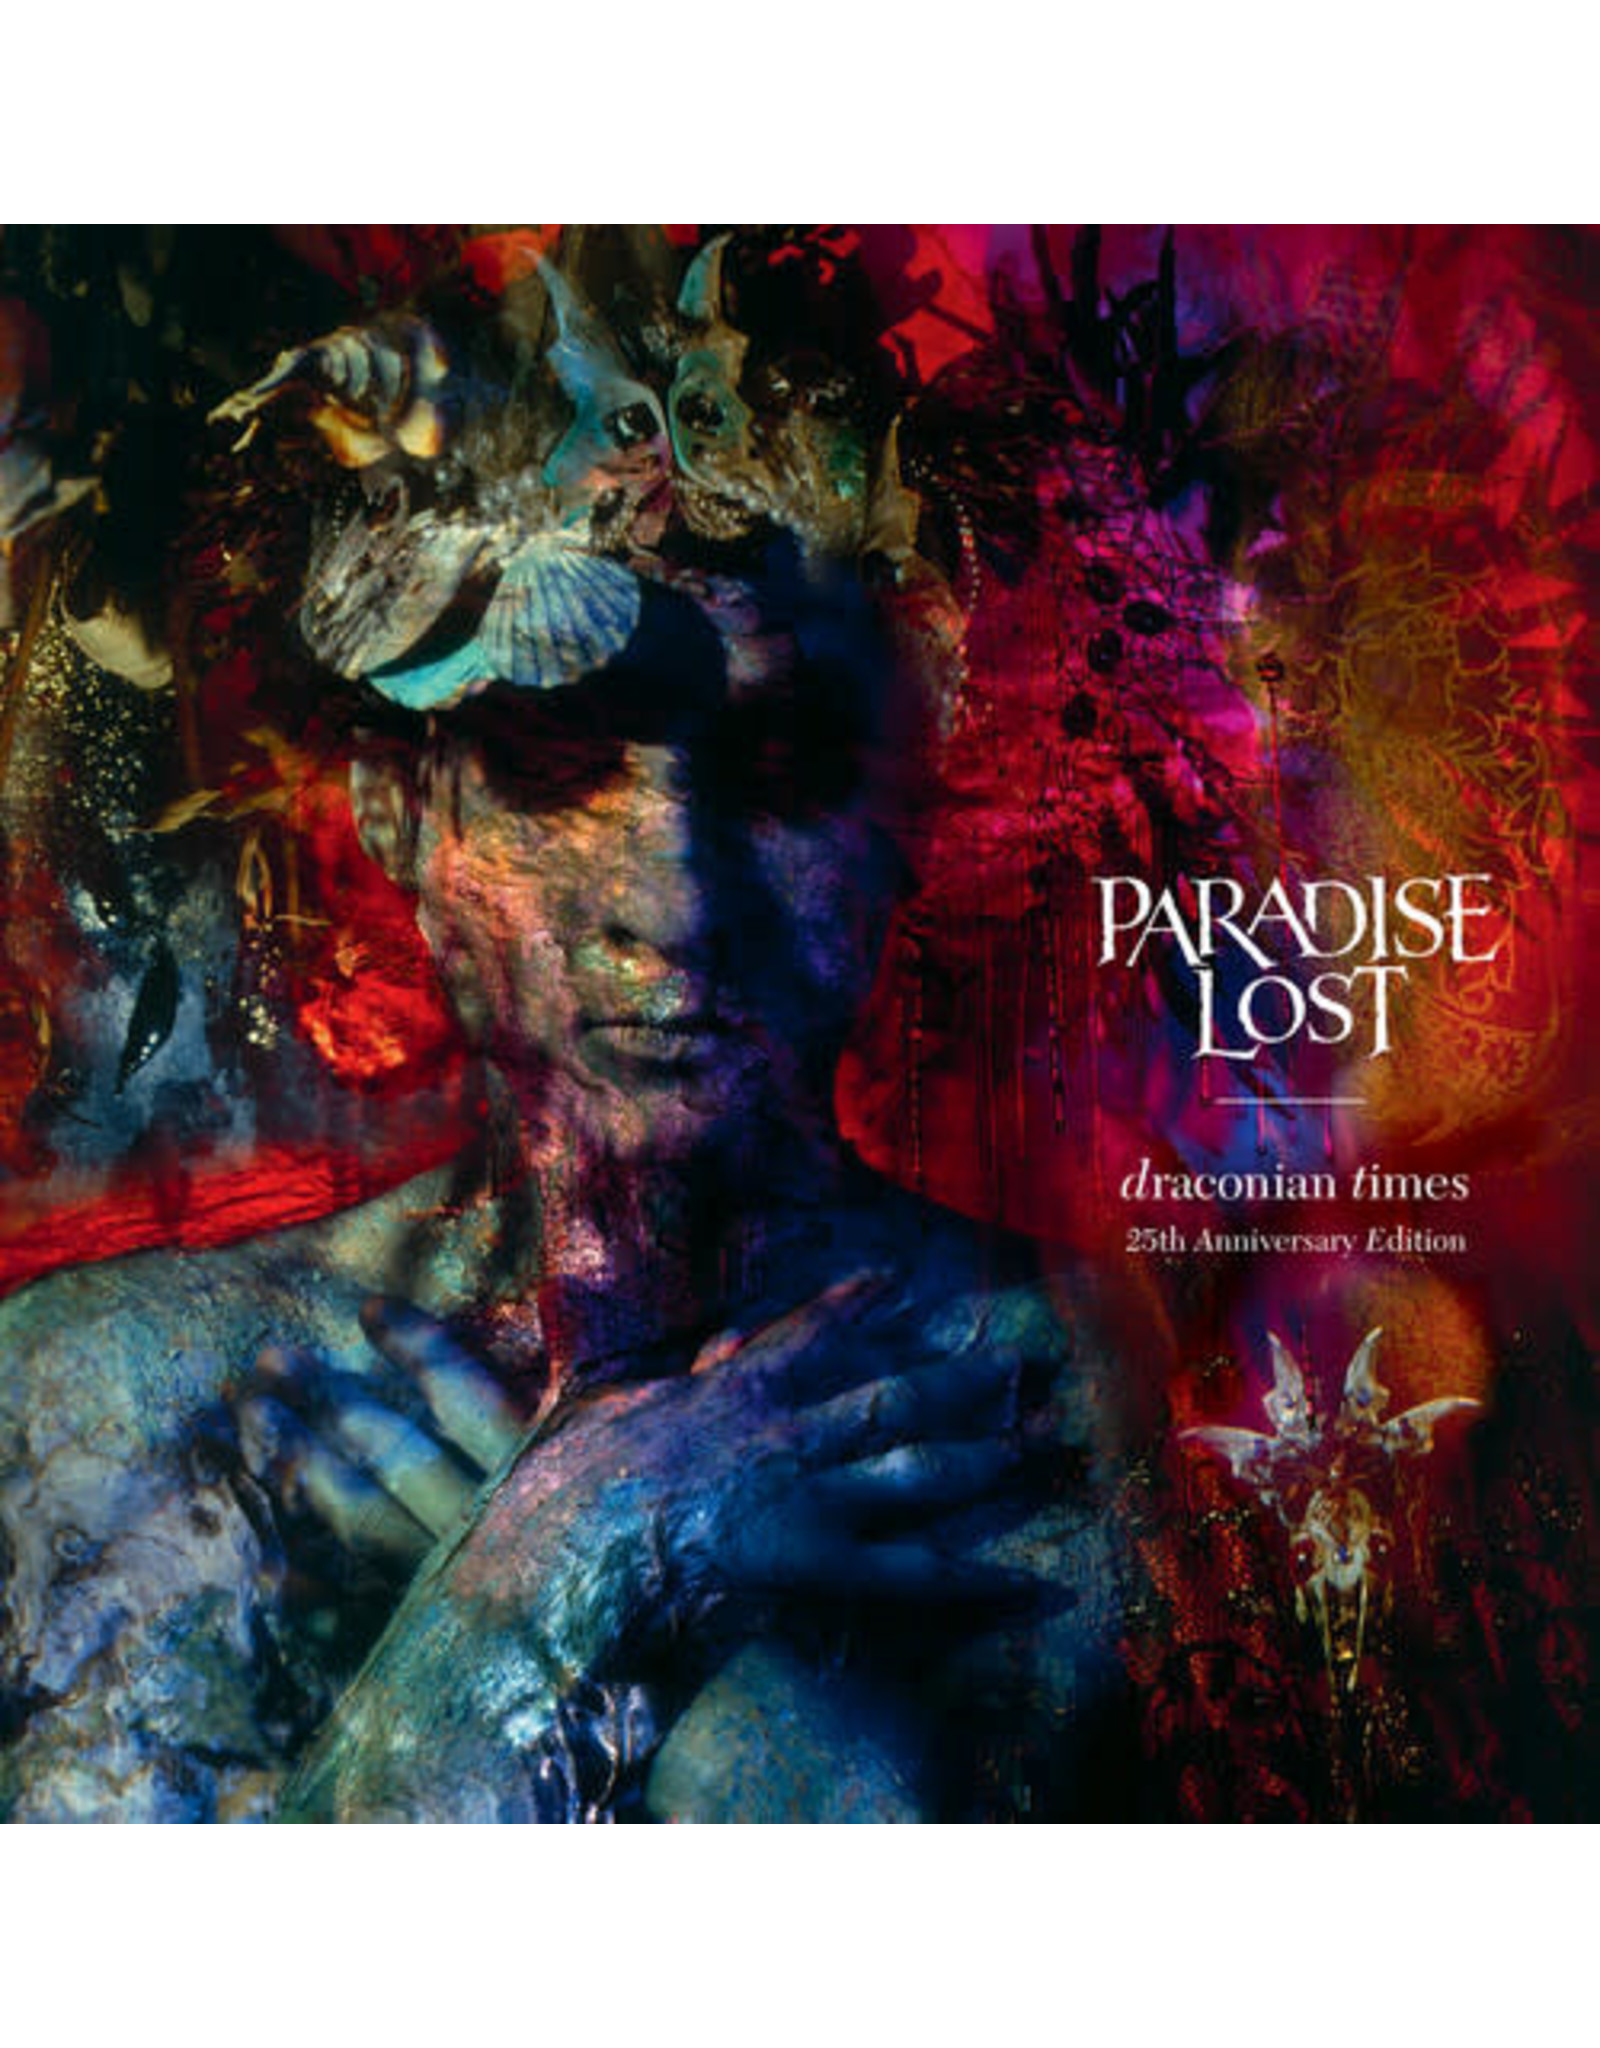 New Vinyl Paradise Lost - Draconian Times (25th Anniversary Ed., Colored) 2LP